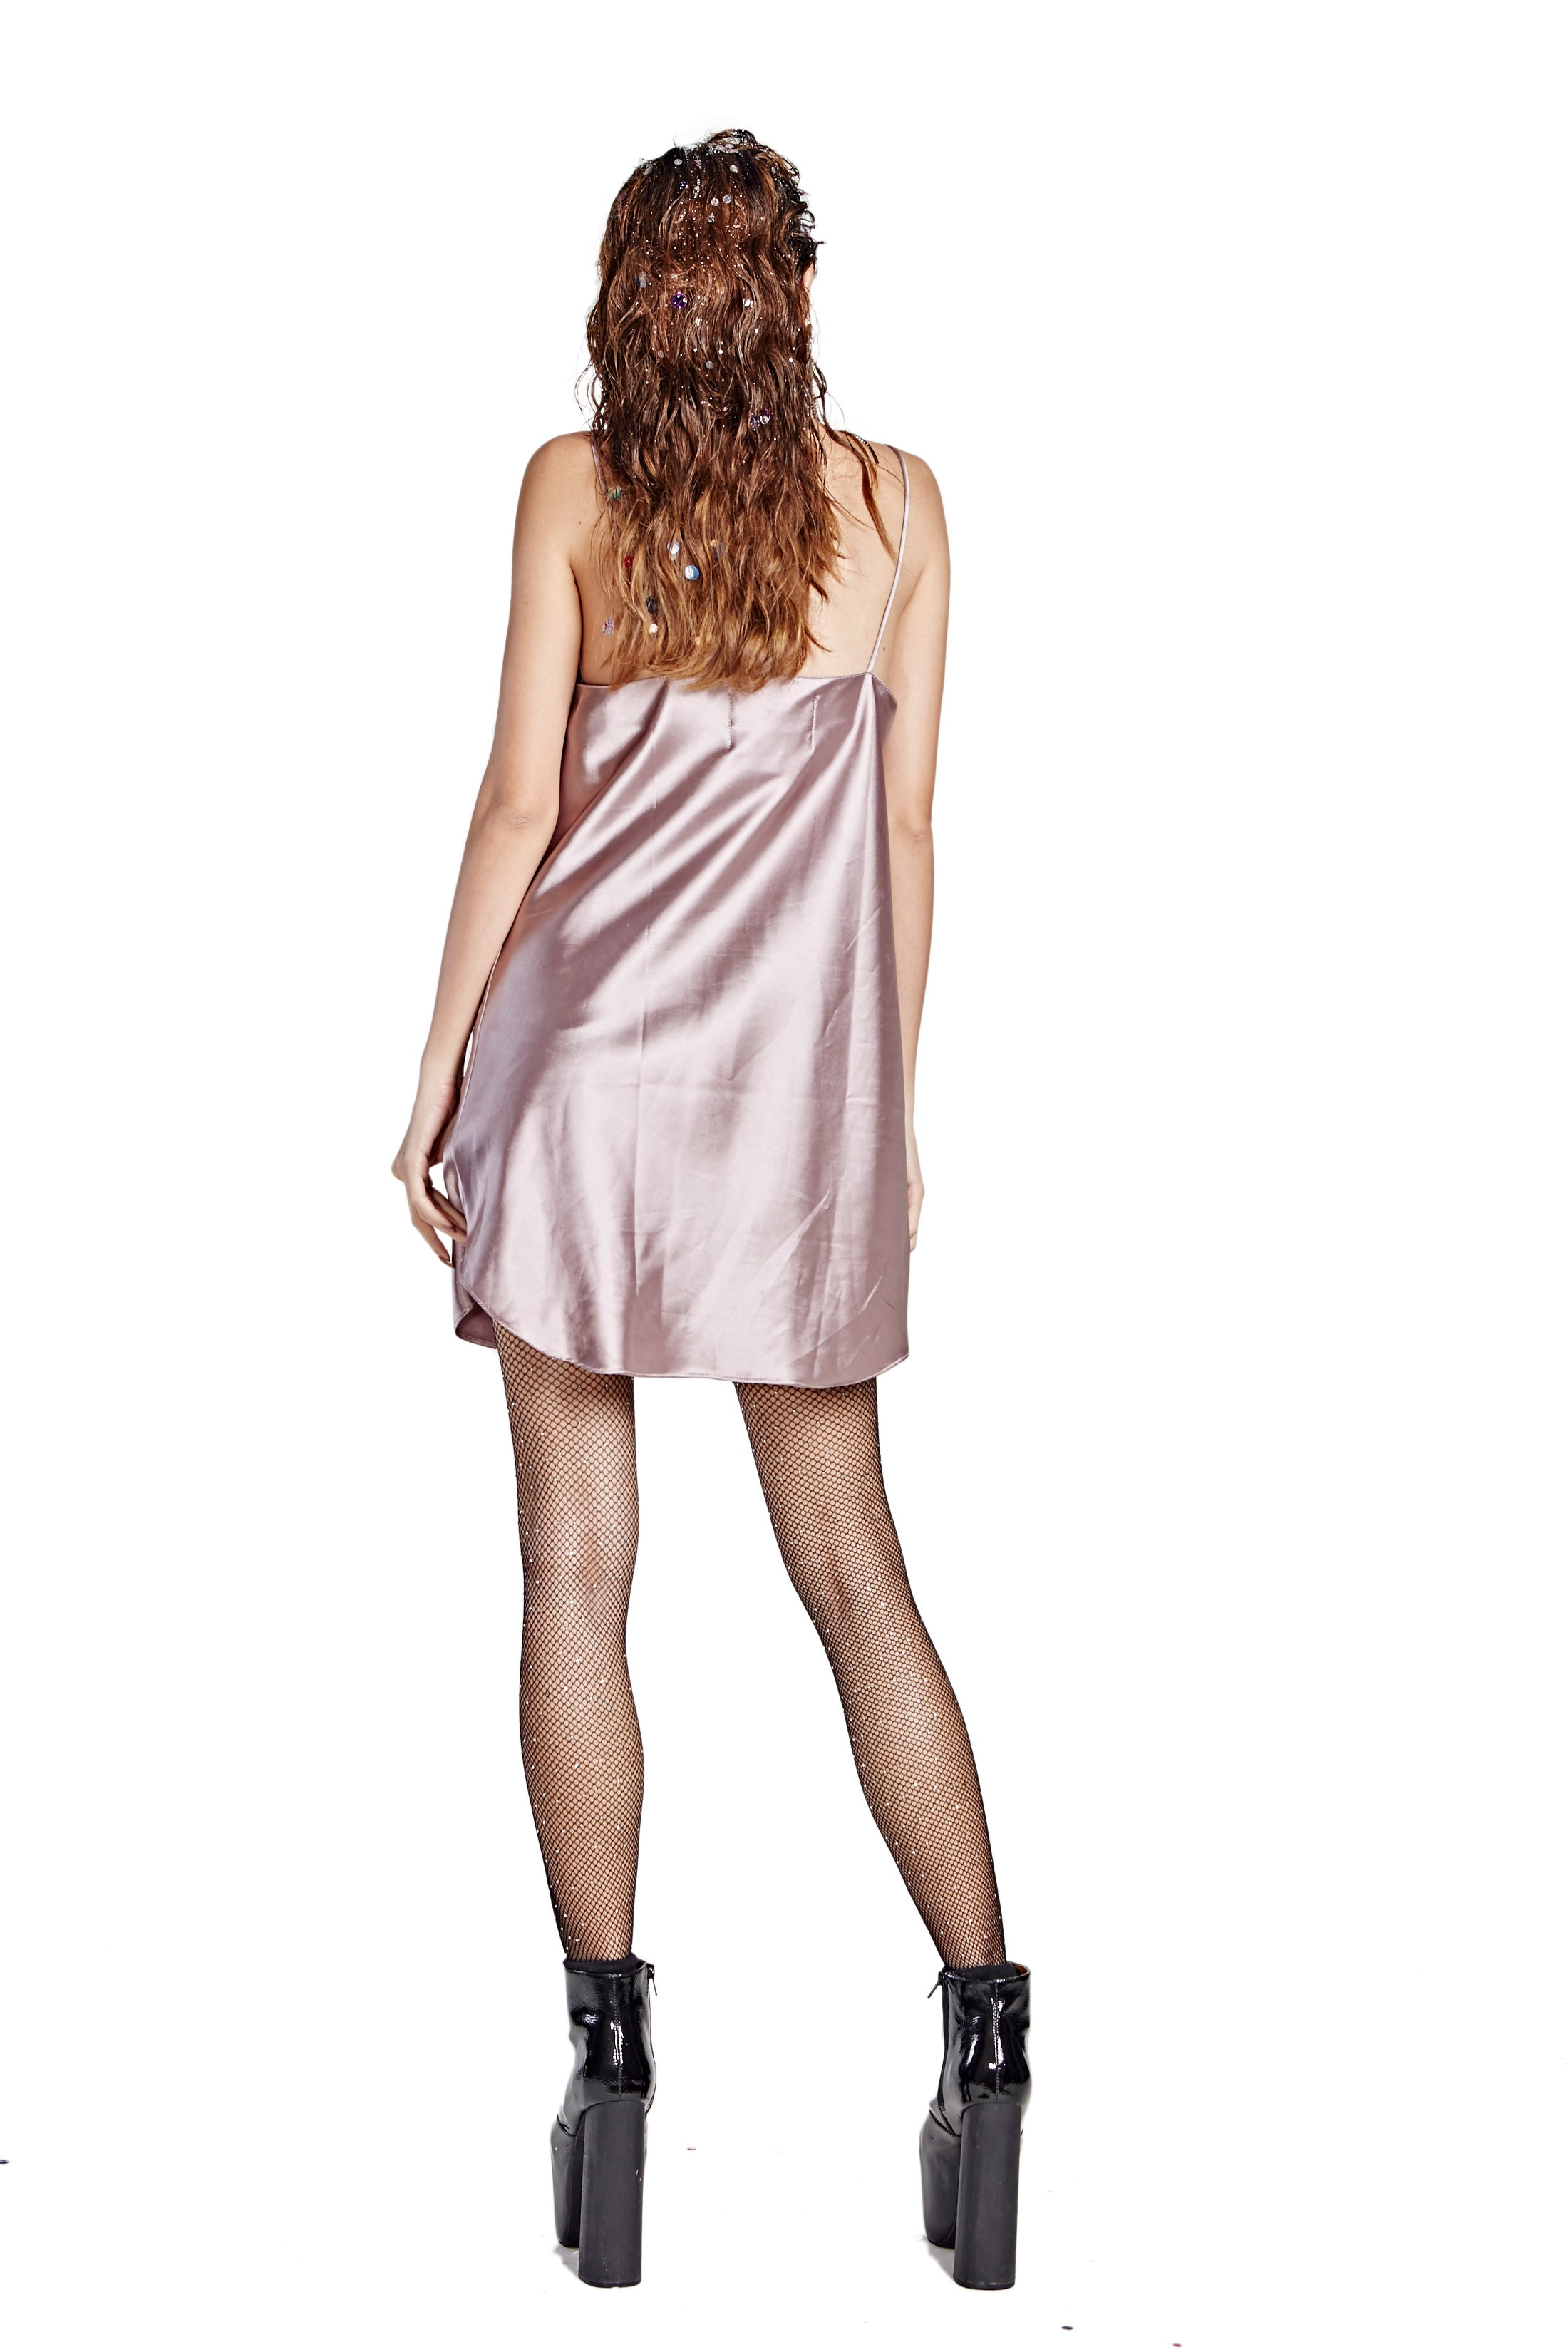 Sleep With Me Night Gown - Dark Pink